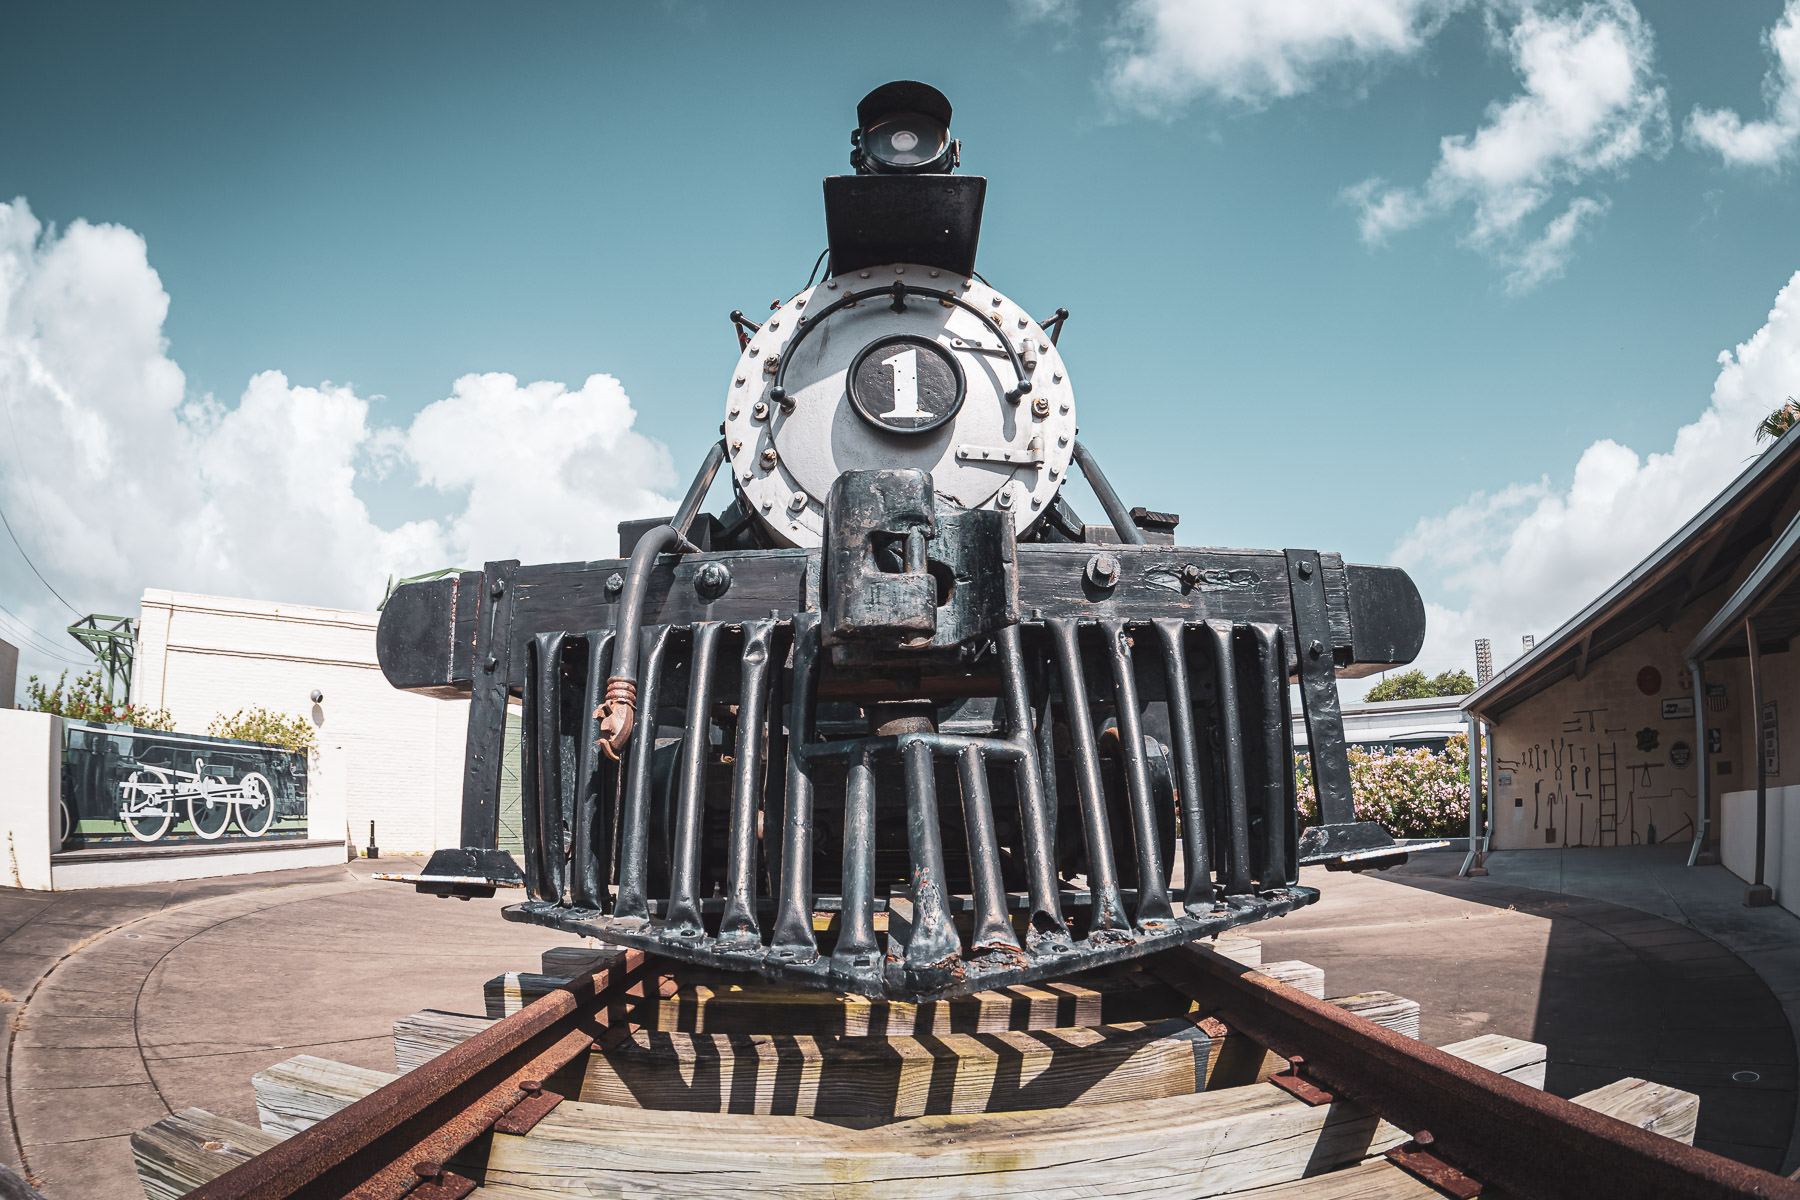 The Waco, Beaumont, Trinity, & Sabine Railway #1, a 2-6-2 Prairie Class Locomotive built in 1920, on display at the Galveston Railroad Museum.